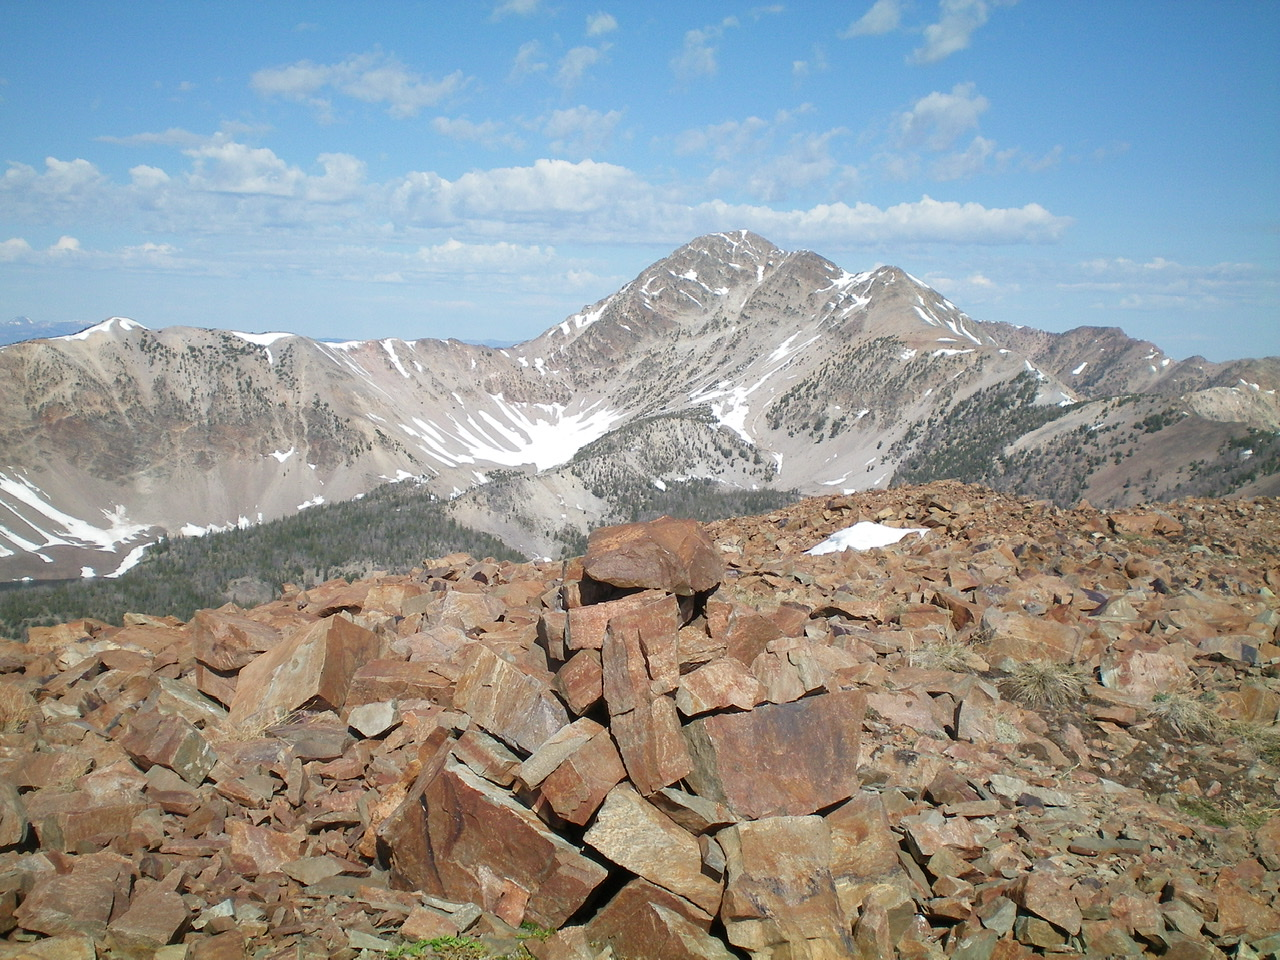 The shale-strewn summit of Peak 10263 with May Mountain in the background. Livingston Douglas Photo